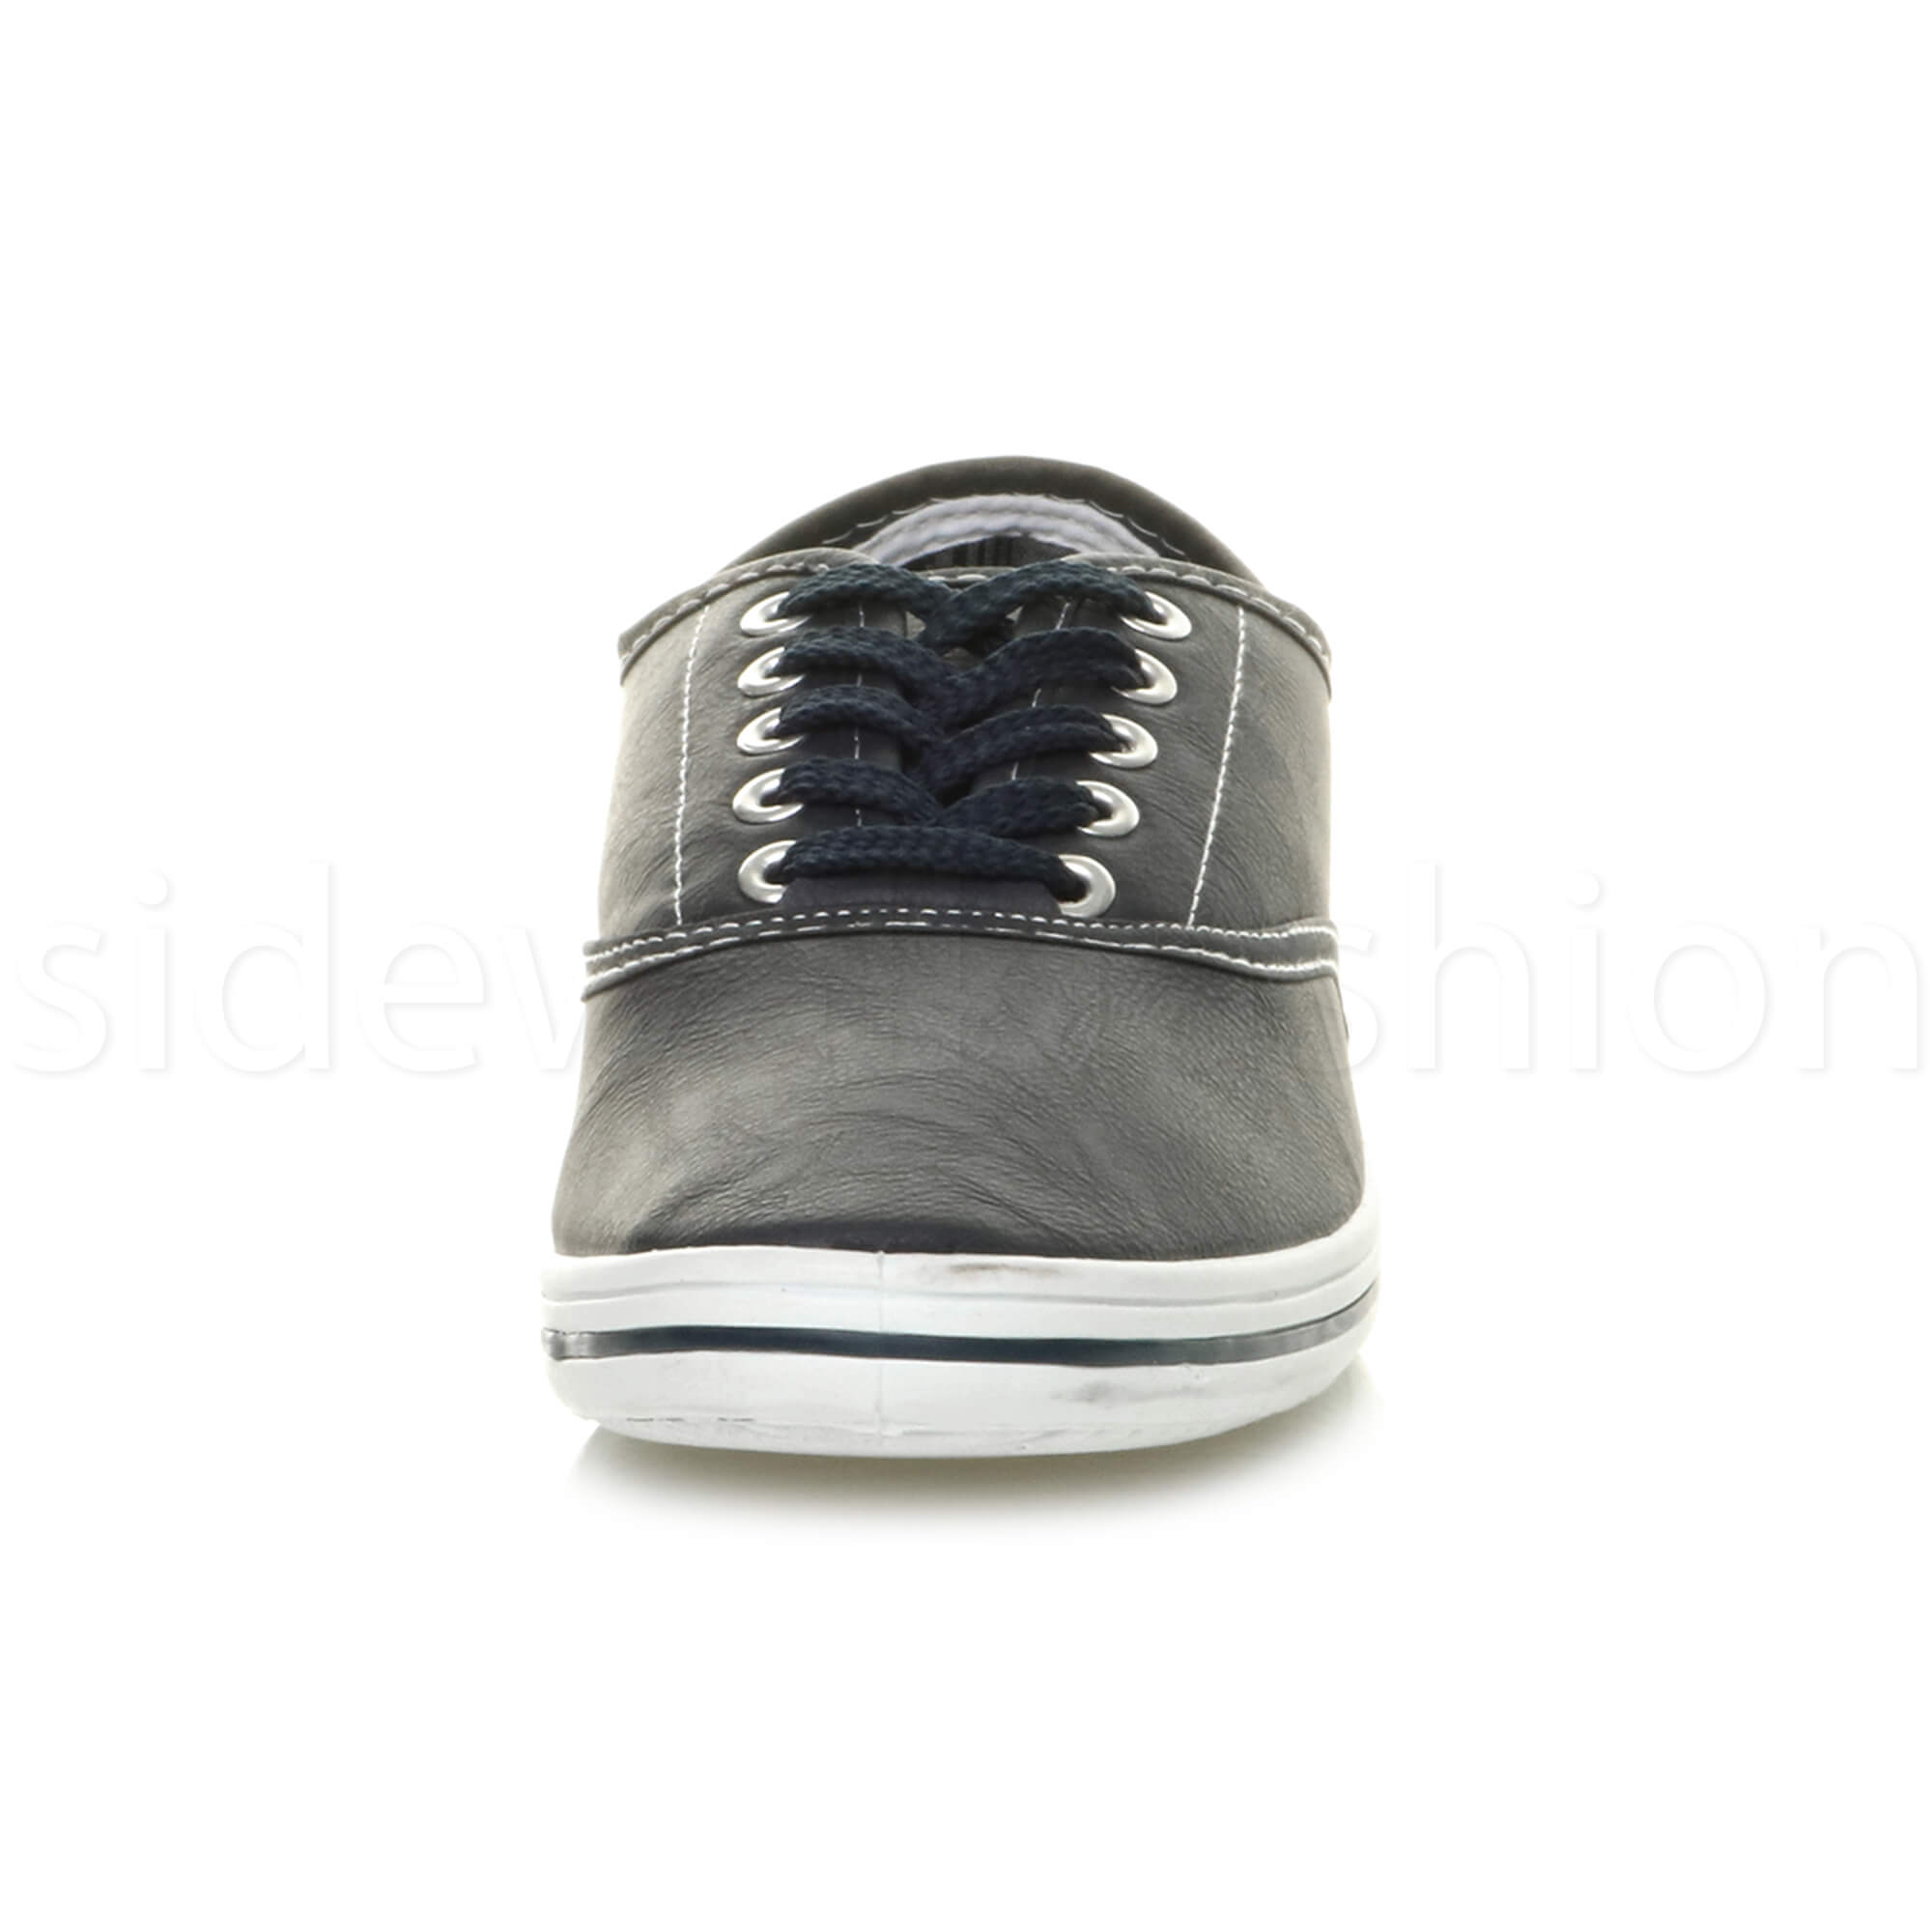 Mens-flat-lace-up-work-smart-plain-casual-pump-plimsoles-trainers-shoes-size thumbnail 14